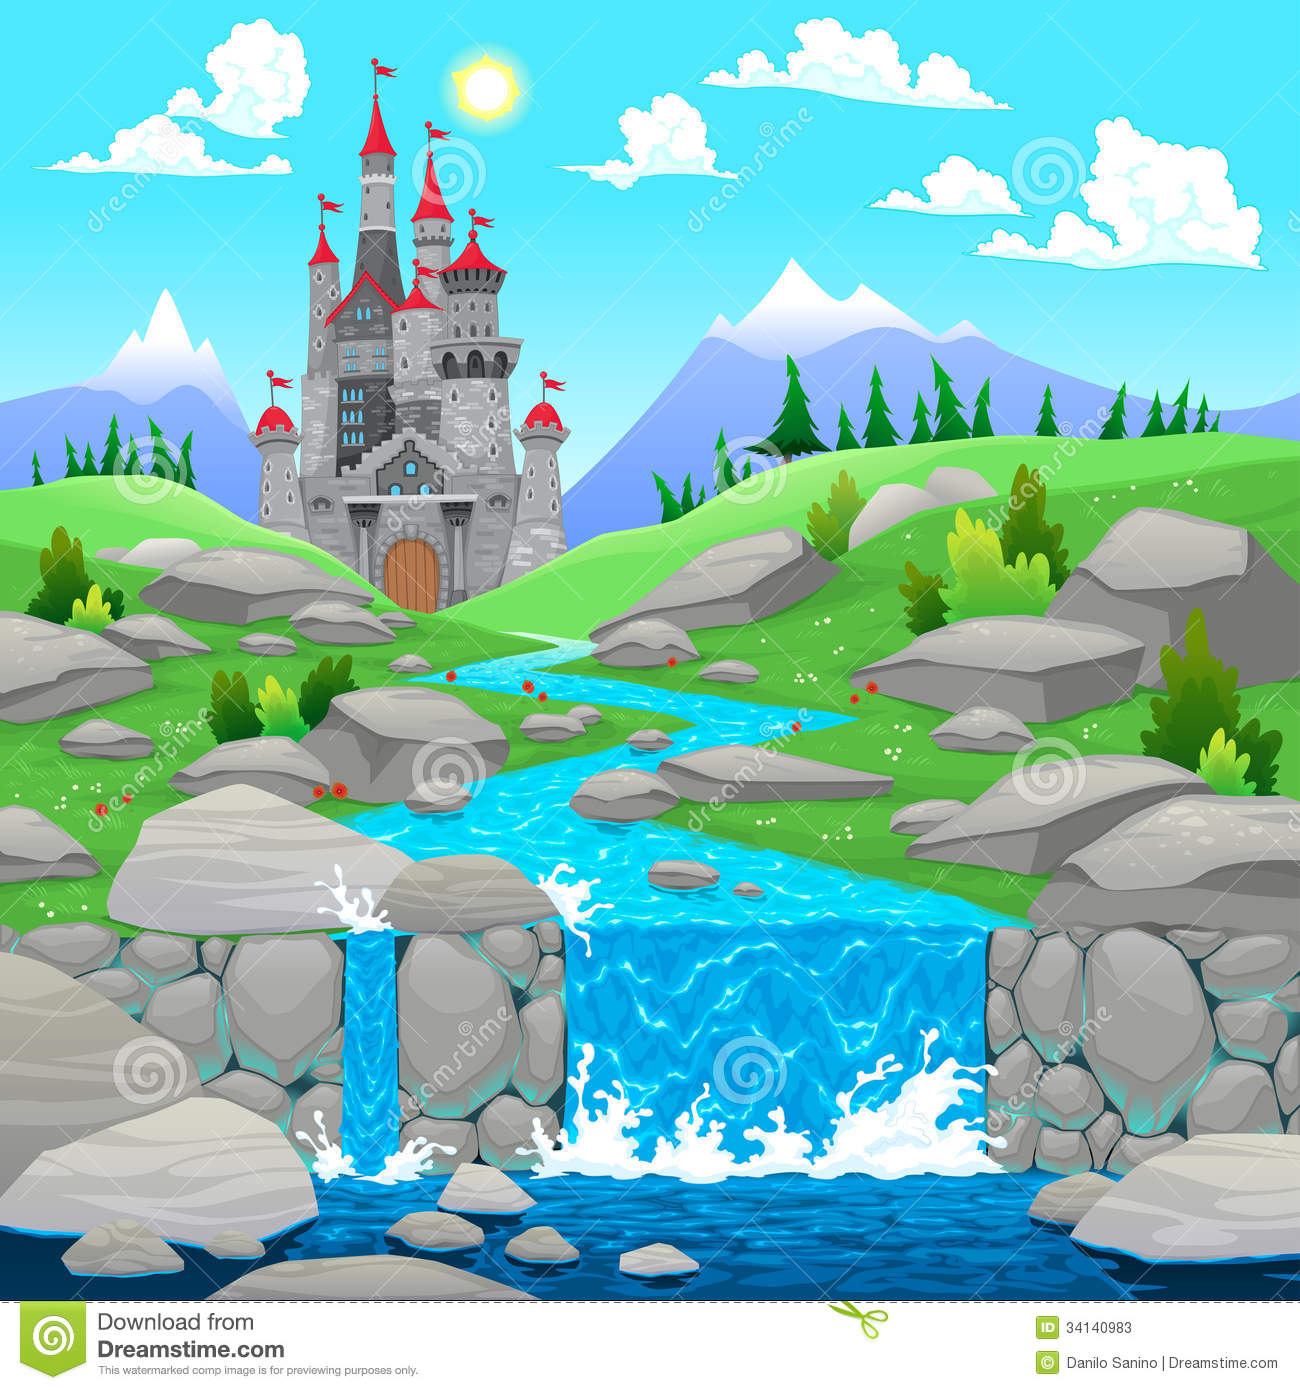 Town Landscape Vector Illustration: Mountain Landscape With River And Castle. Stock Vector